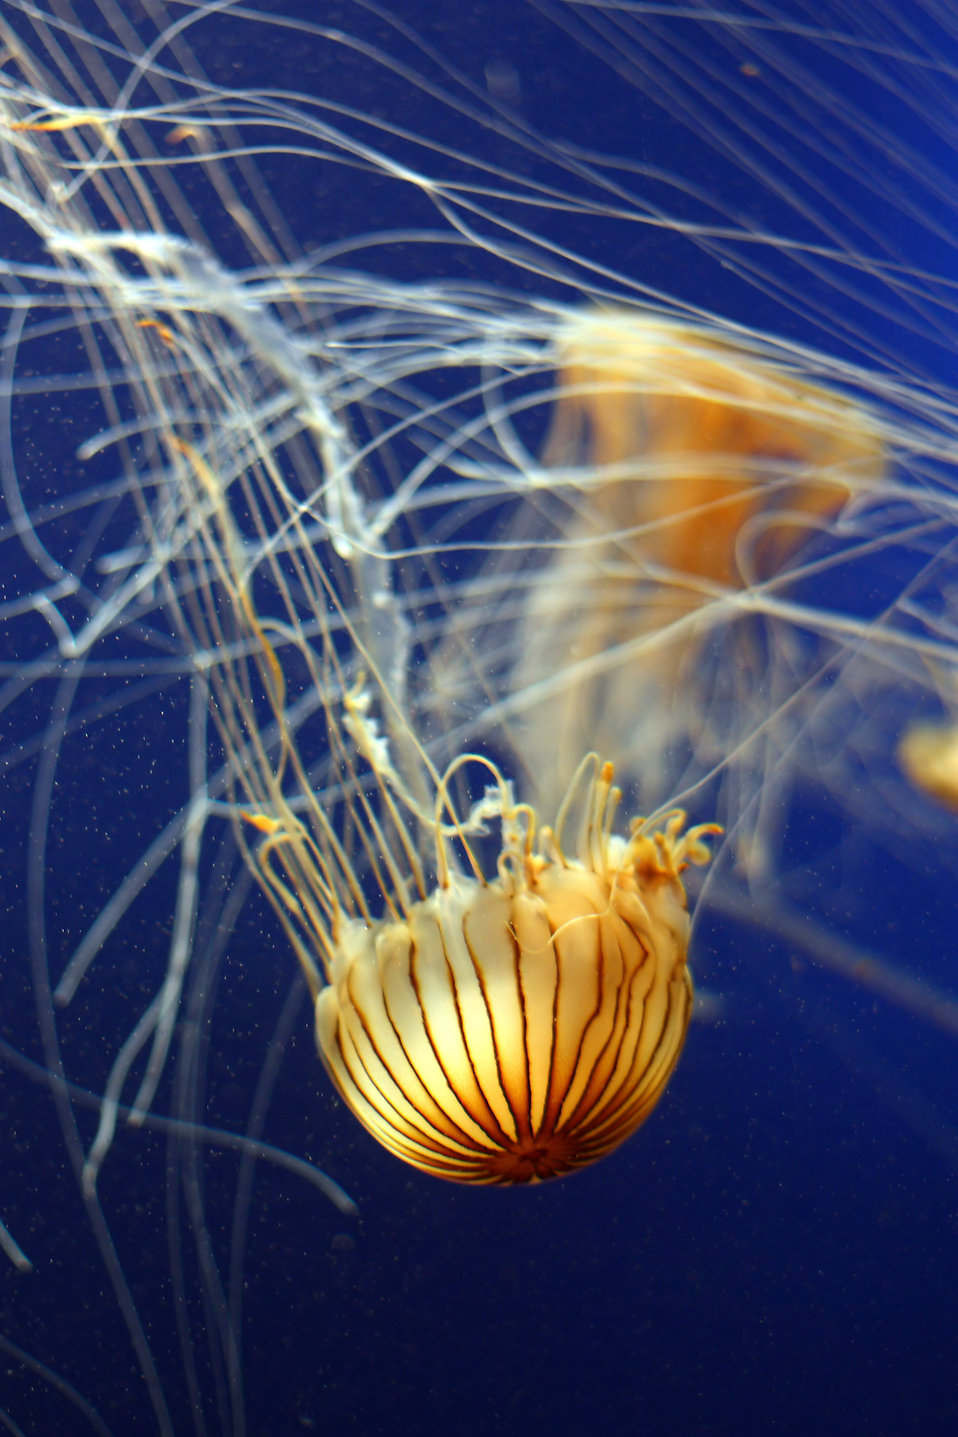 A jellyfish swimming in the ocean : Free Stock Photo